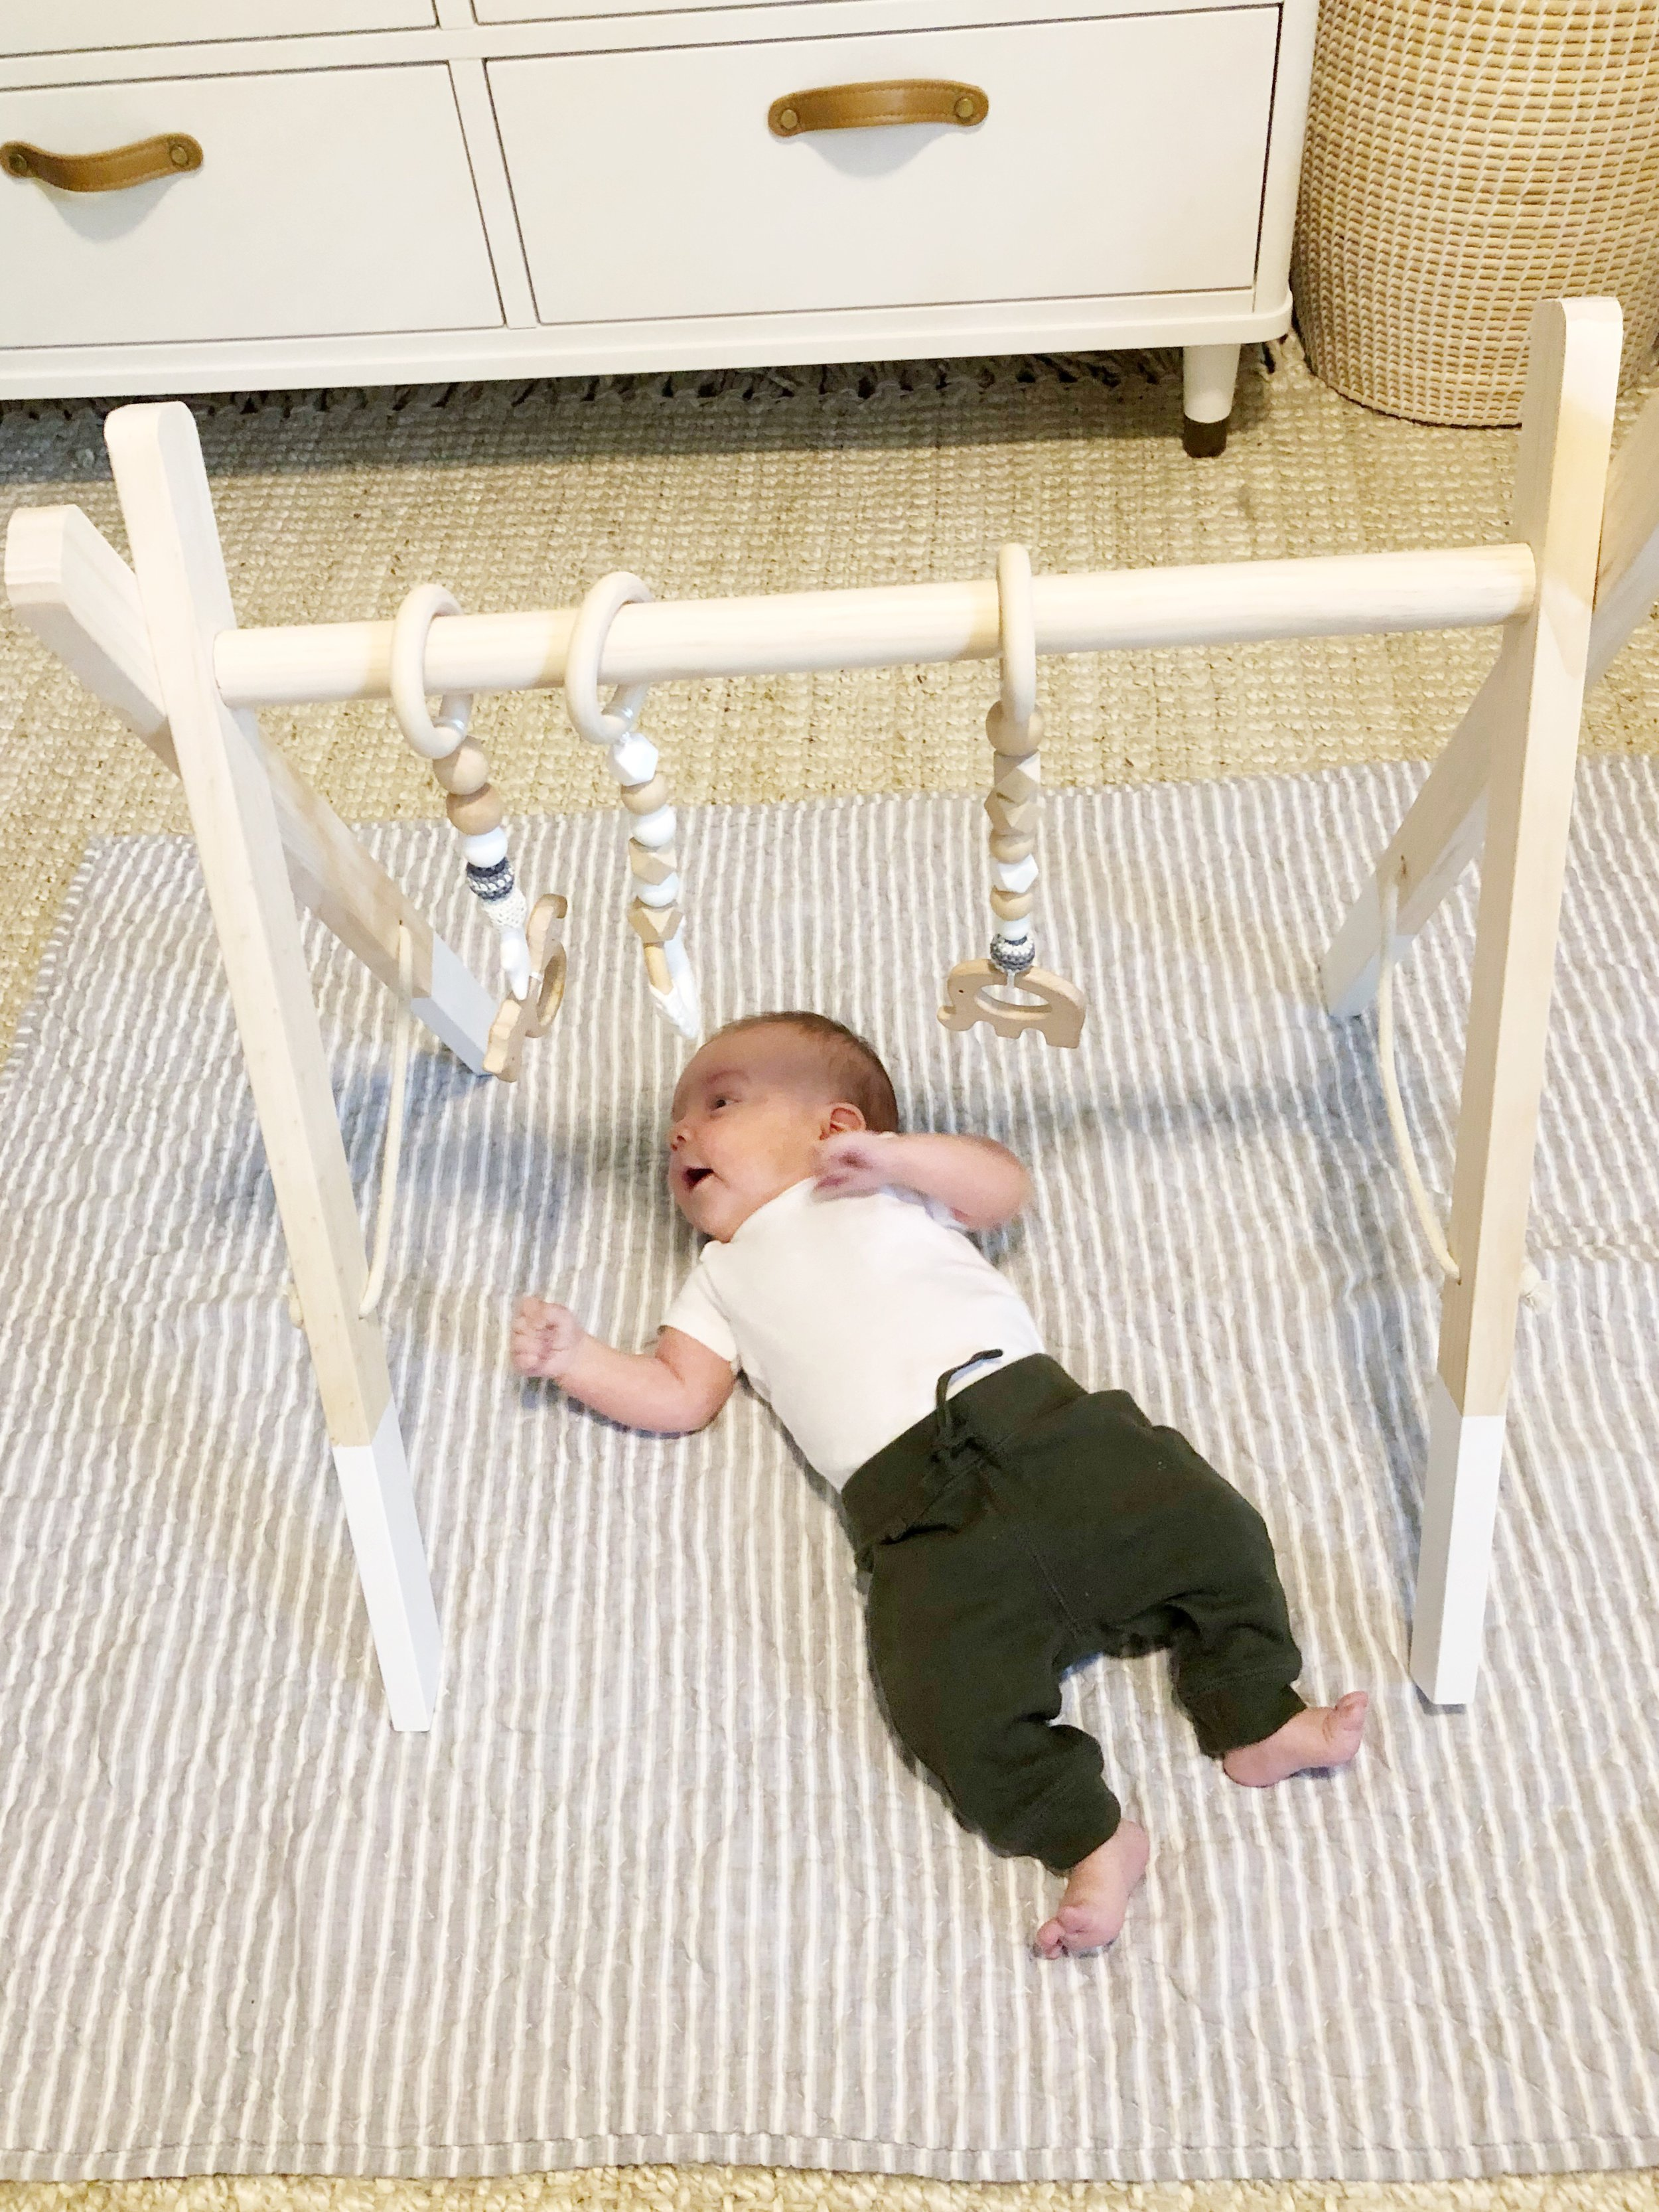 We tried the play gym at 1 month, but he's really getting into it now, at 2 months.